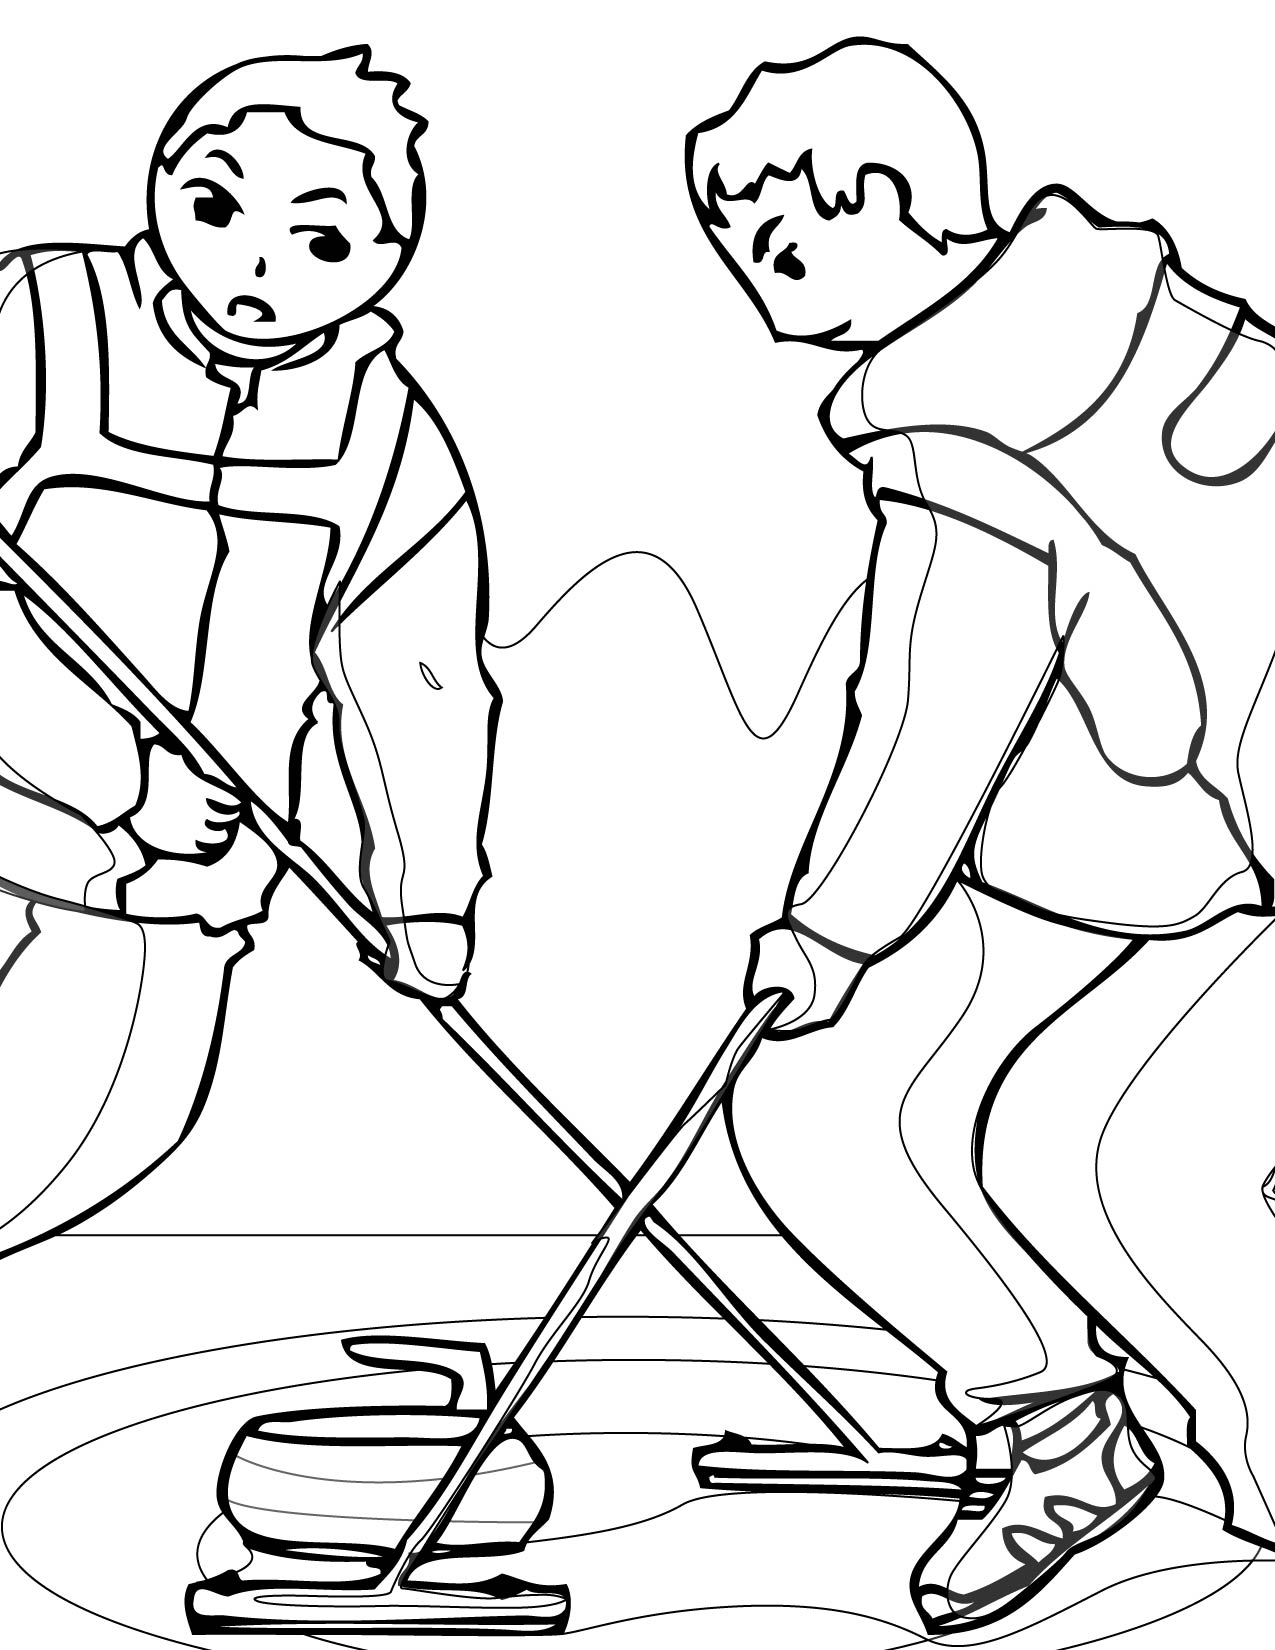 Handipoints Coloring Pages PrimaryGames